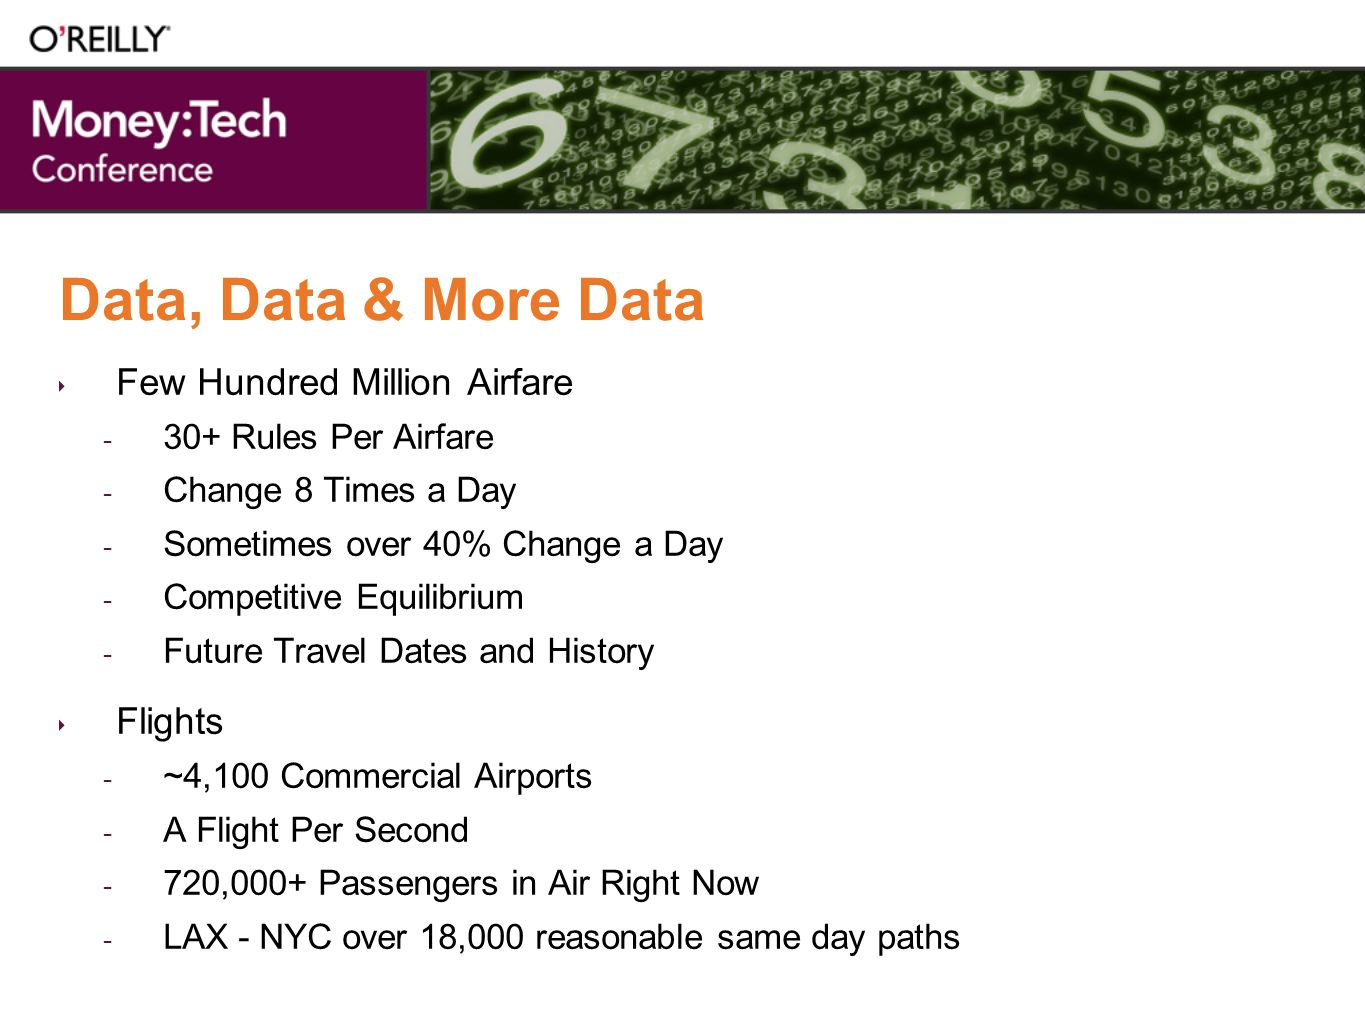 Data, Data & More Data Few Hundred Million Airfare - 30+ Rules Per Airfare - Change 8 Times a Day - Sometimes over 40% Change a Day - Competitive Equilibrium - Future Travel Dates and History Flights - ~4,100 Commercial Airports - A Flight Per Second - 720,000+ Passengers in Air Right Now - LAX - NYC over 18,000 reasonable same day paths